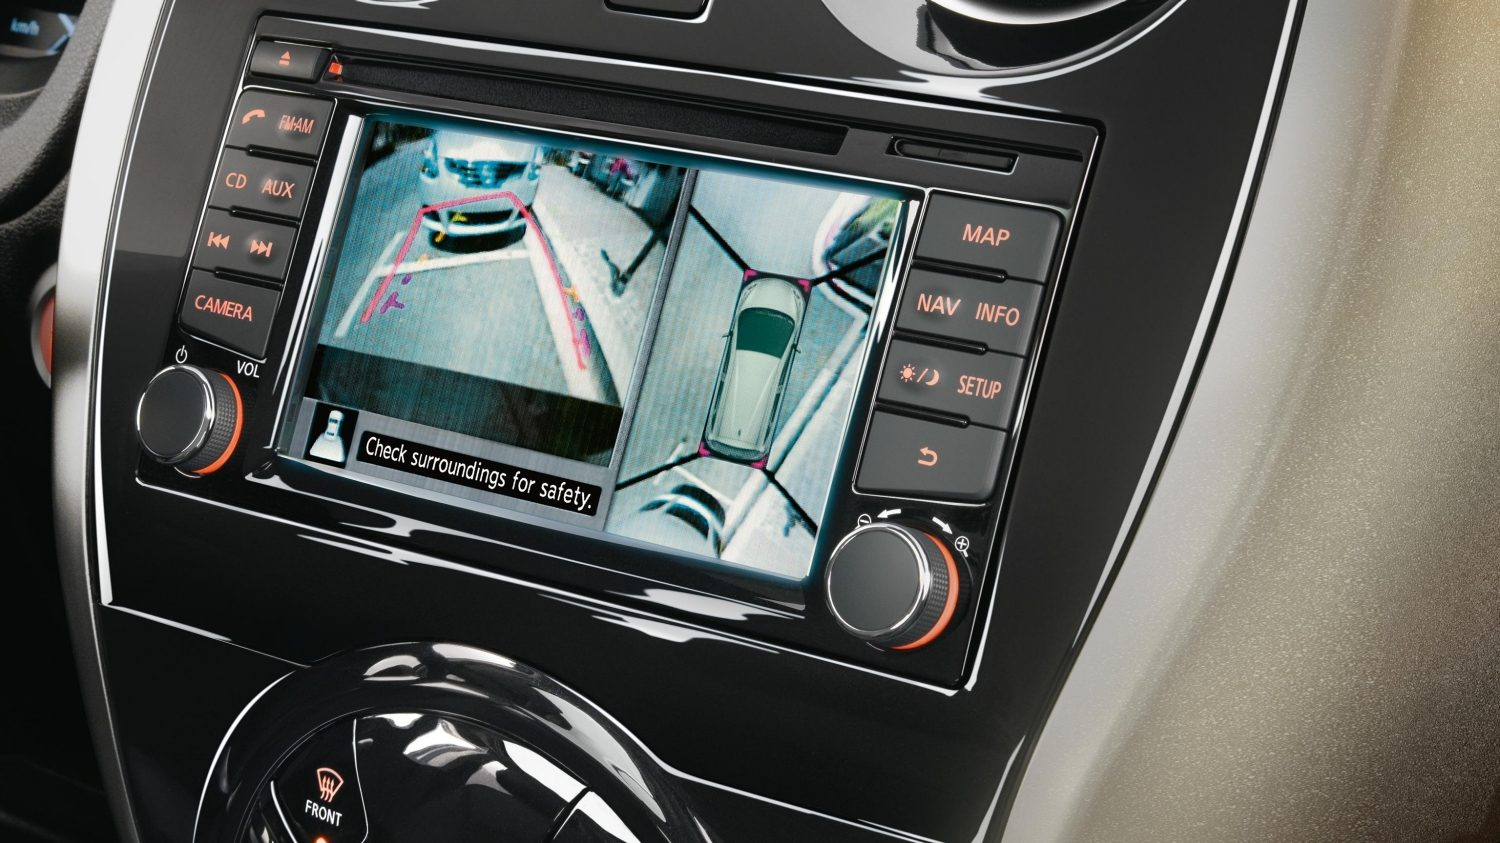 Nissan NOTE – Around view monitor